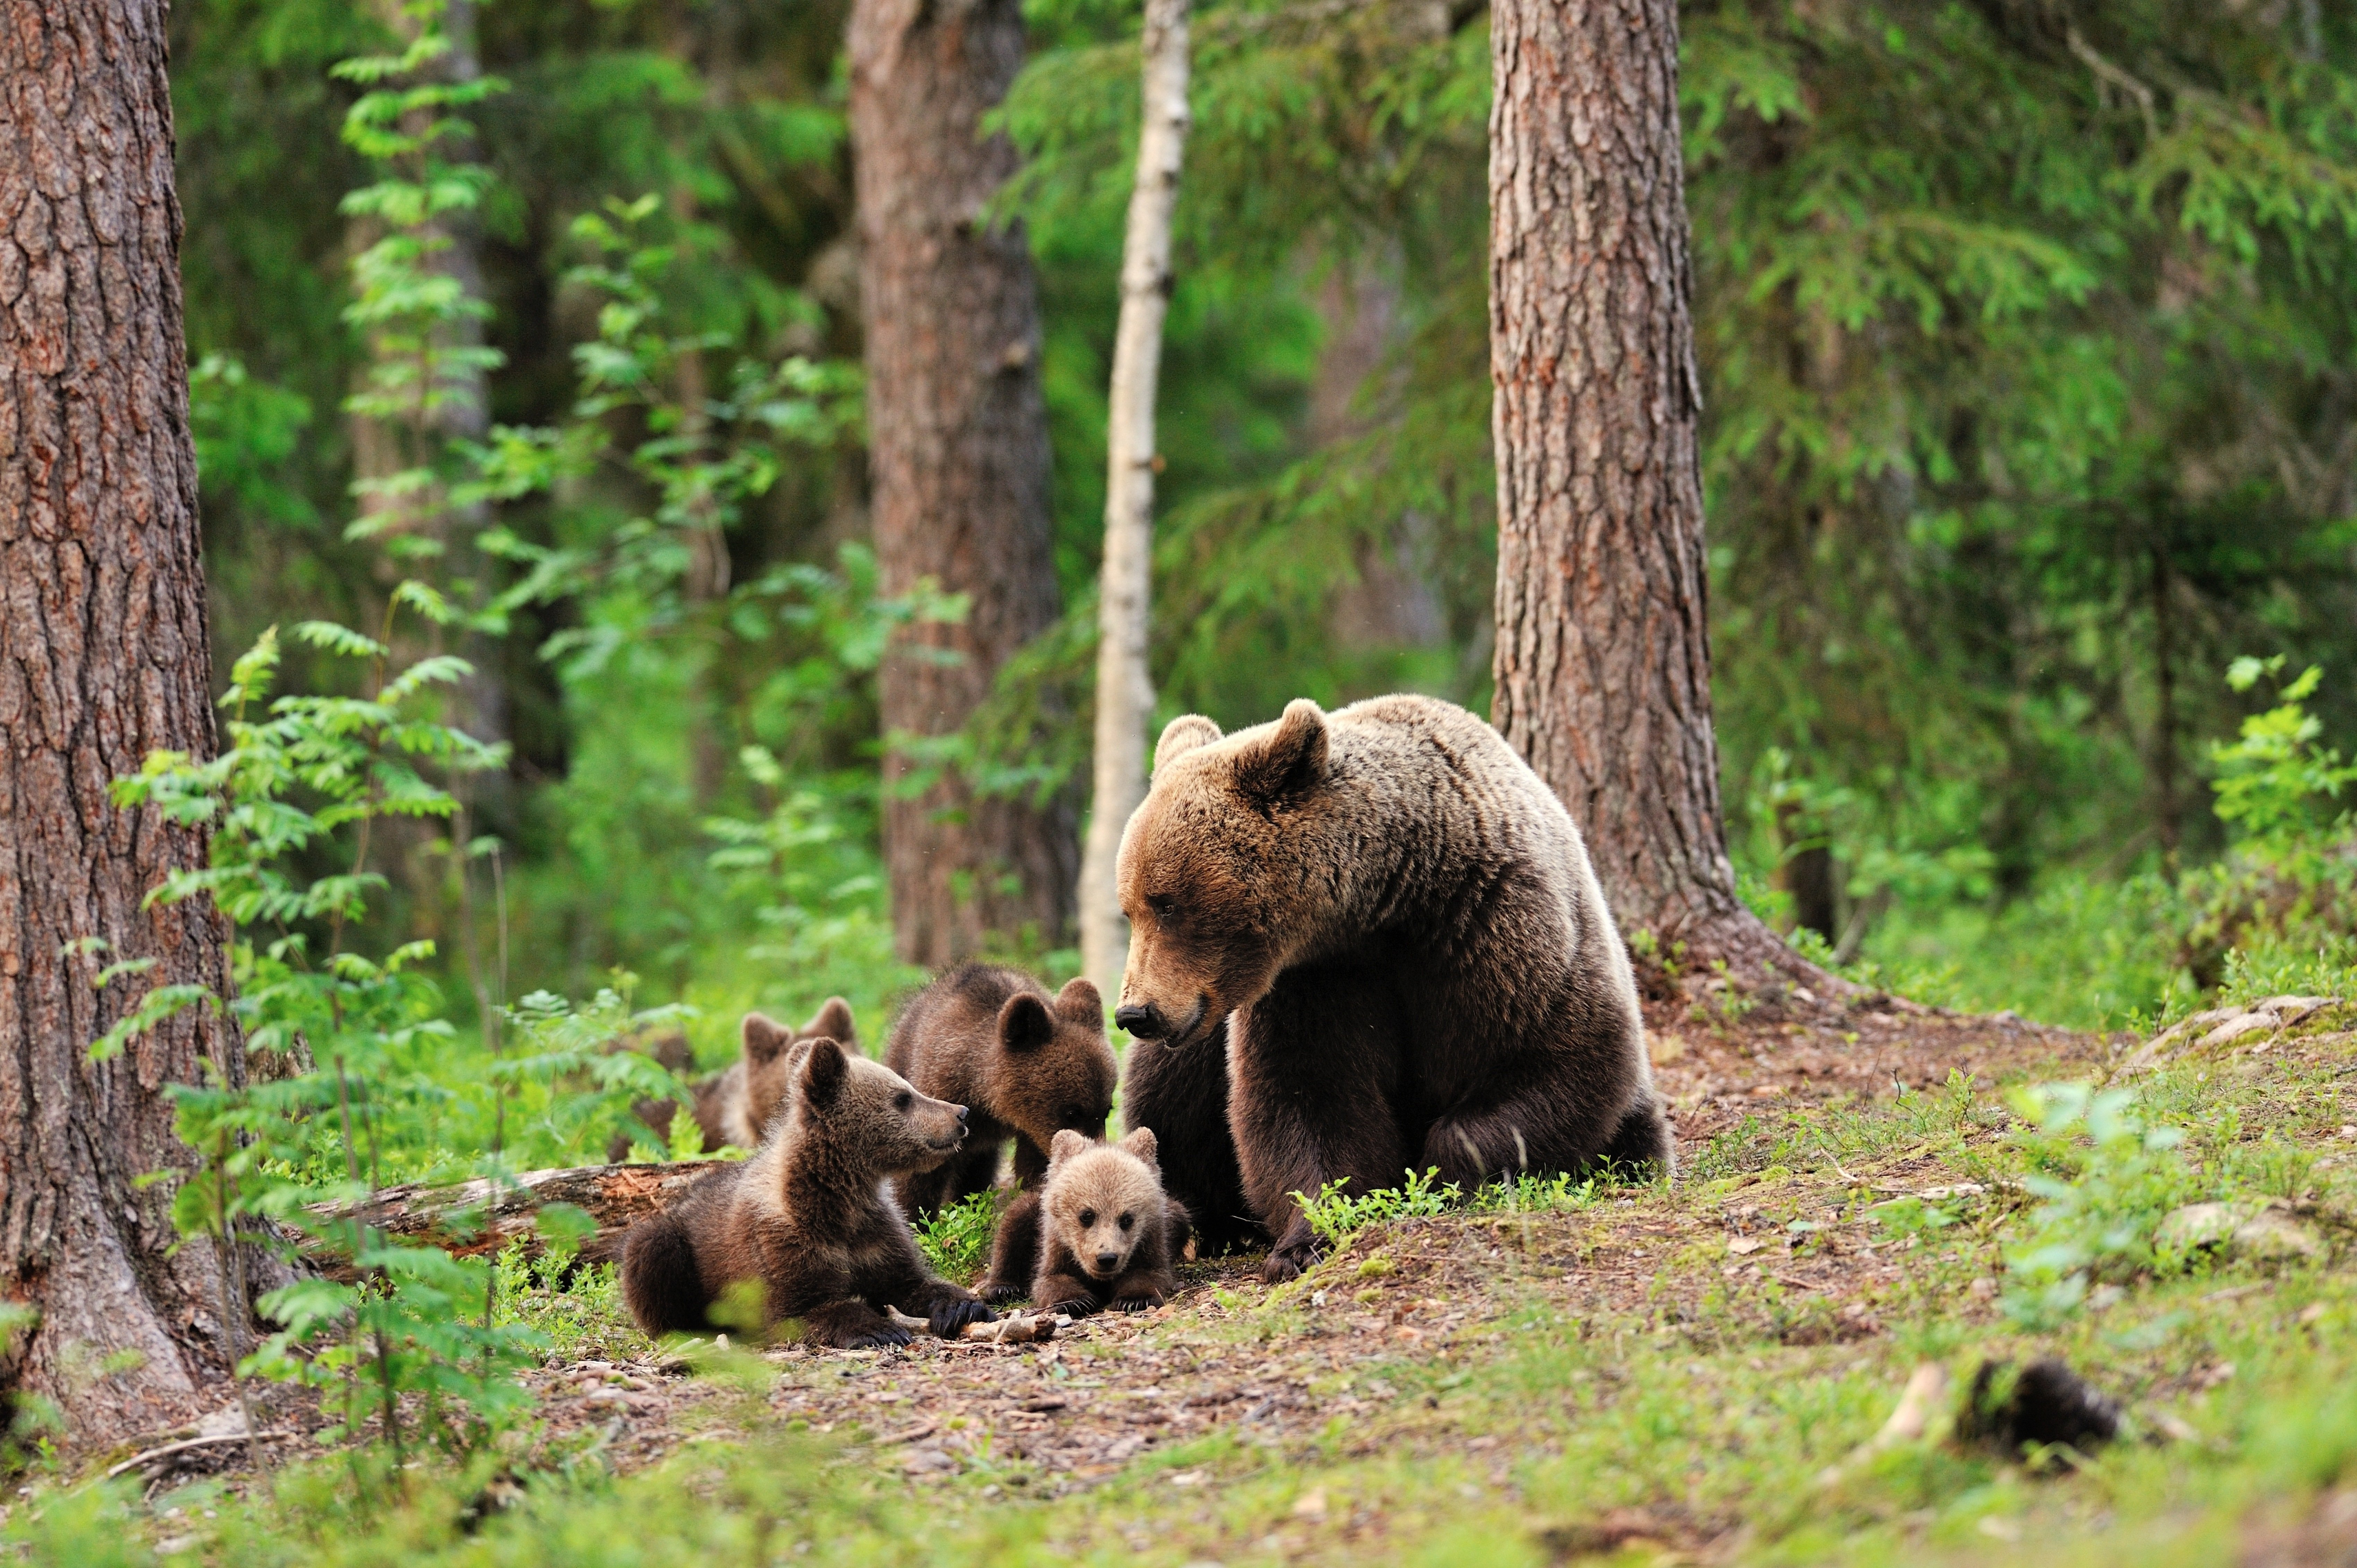 Bear Bears Forest Trees Baby Cub Cubs Mother Family Cute